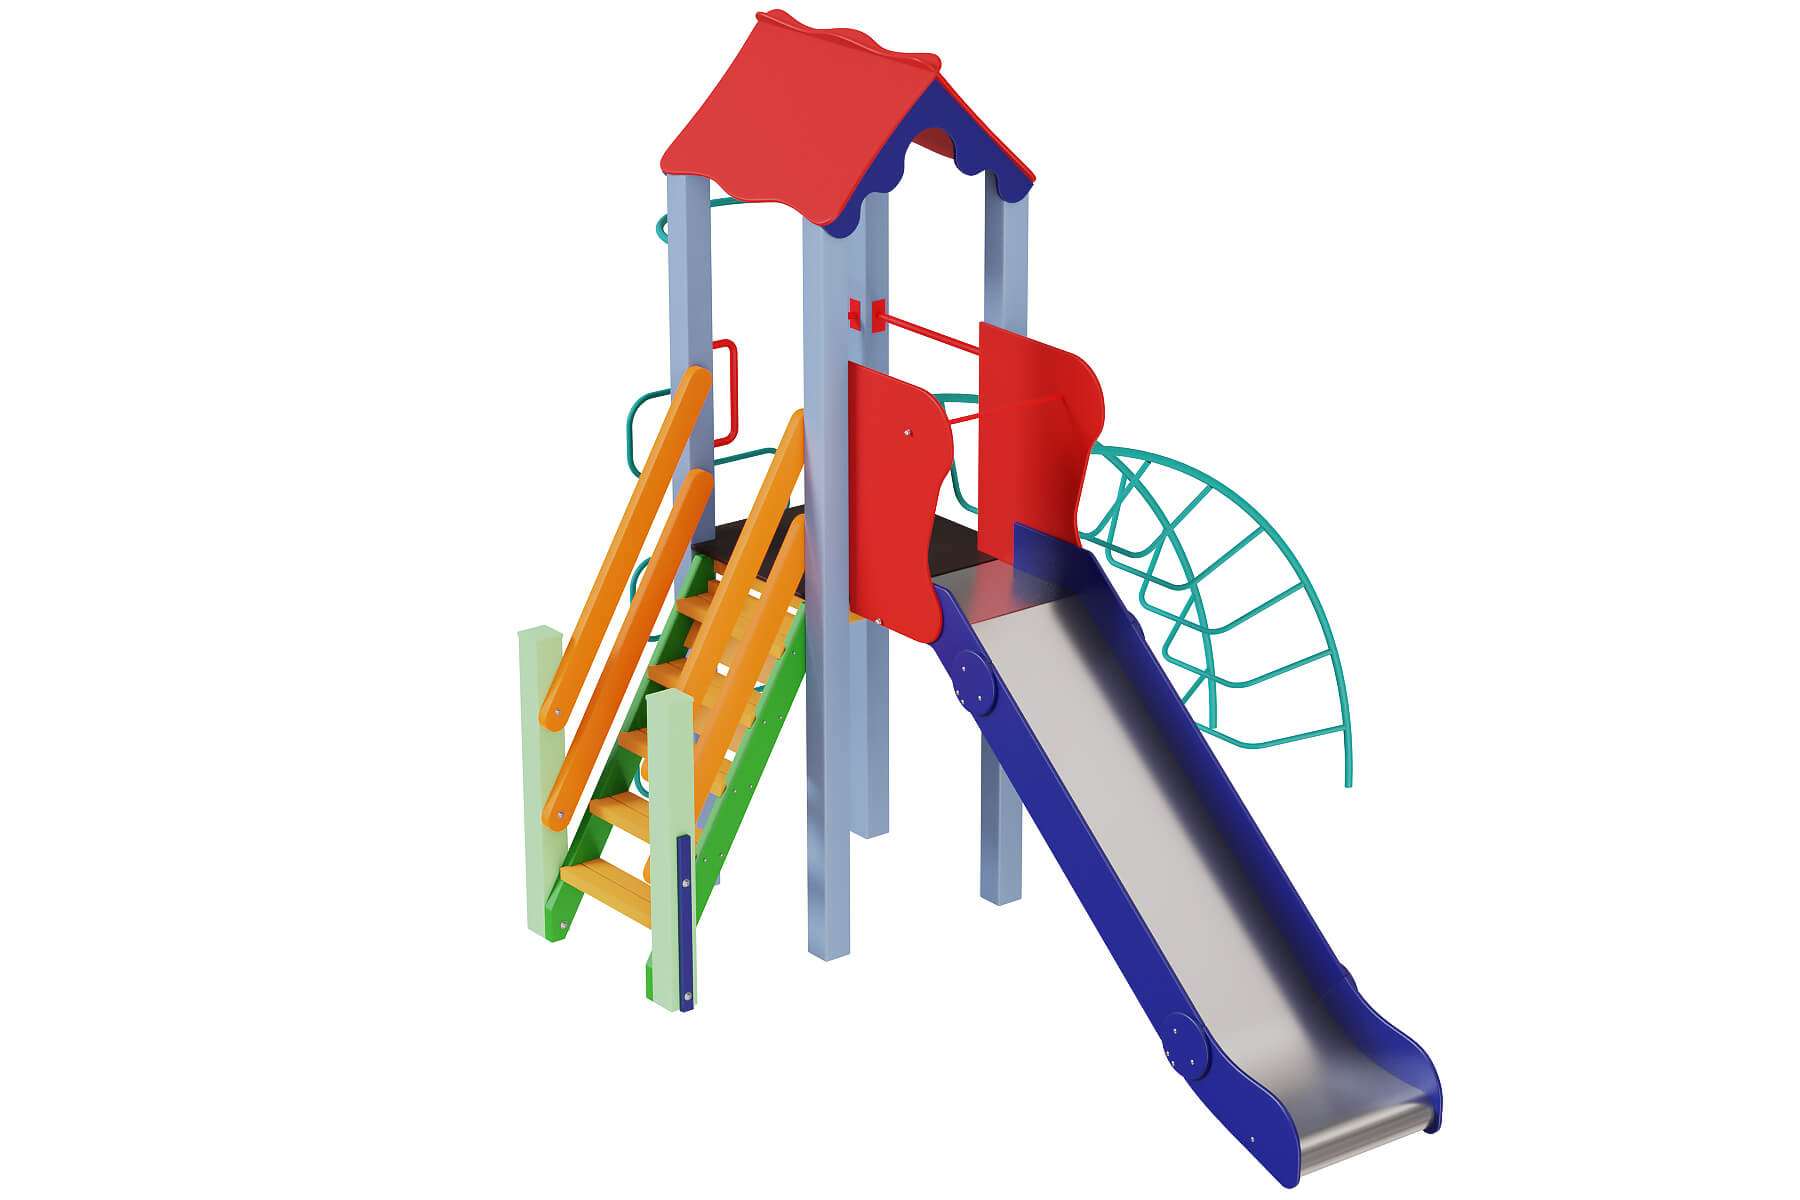 Classic playgrounds and components for children